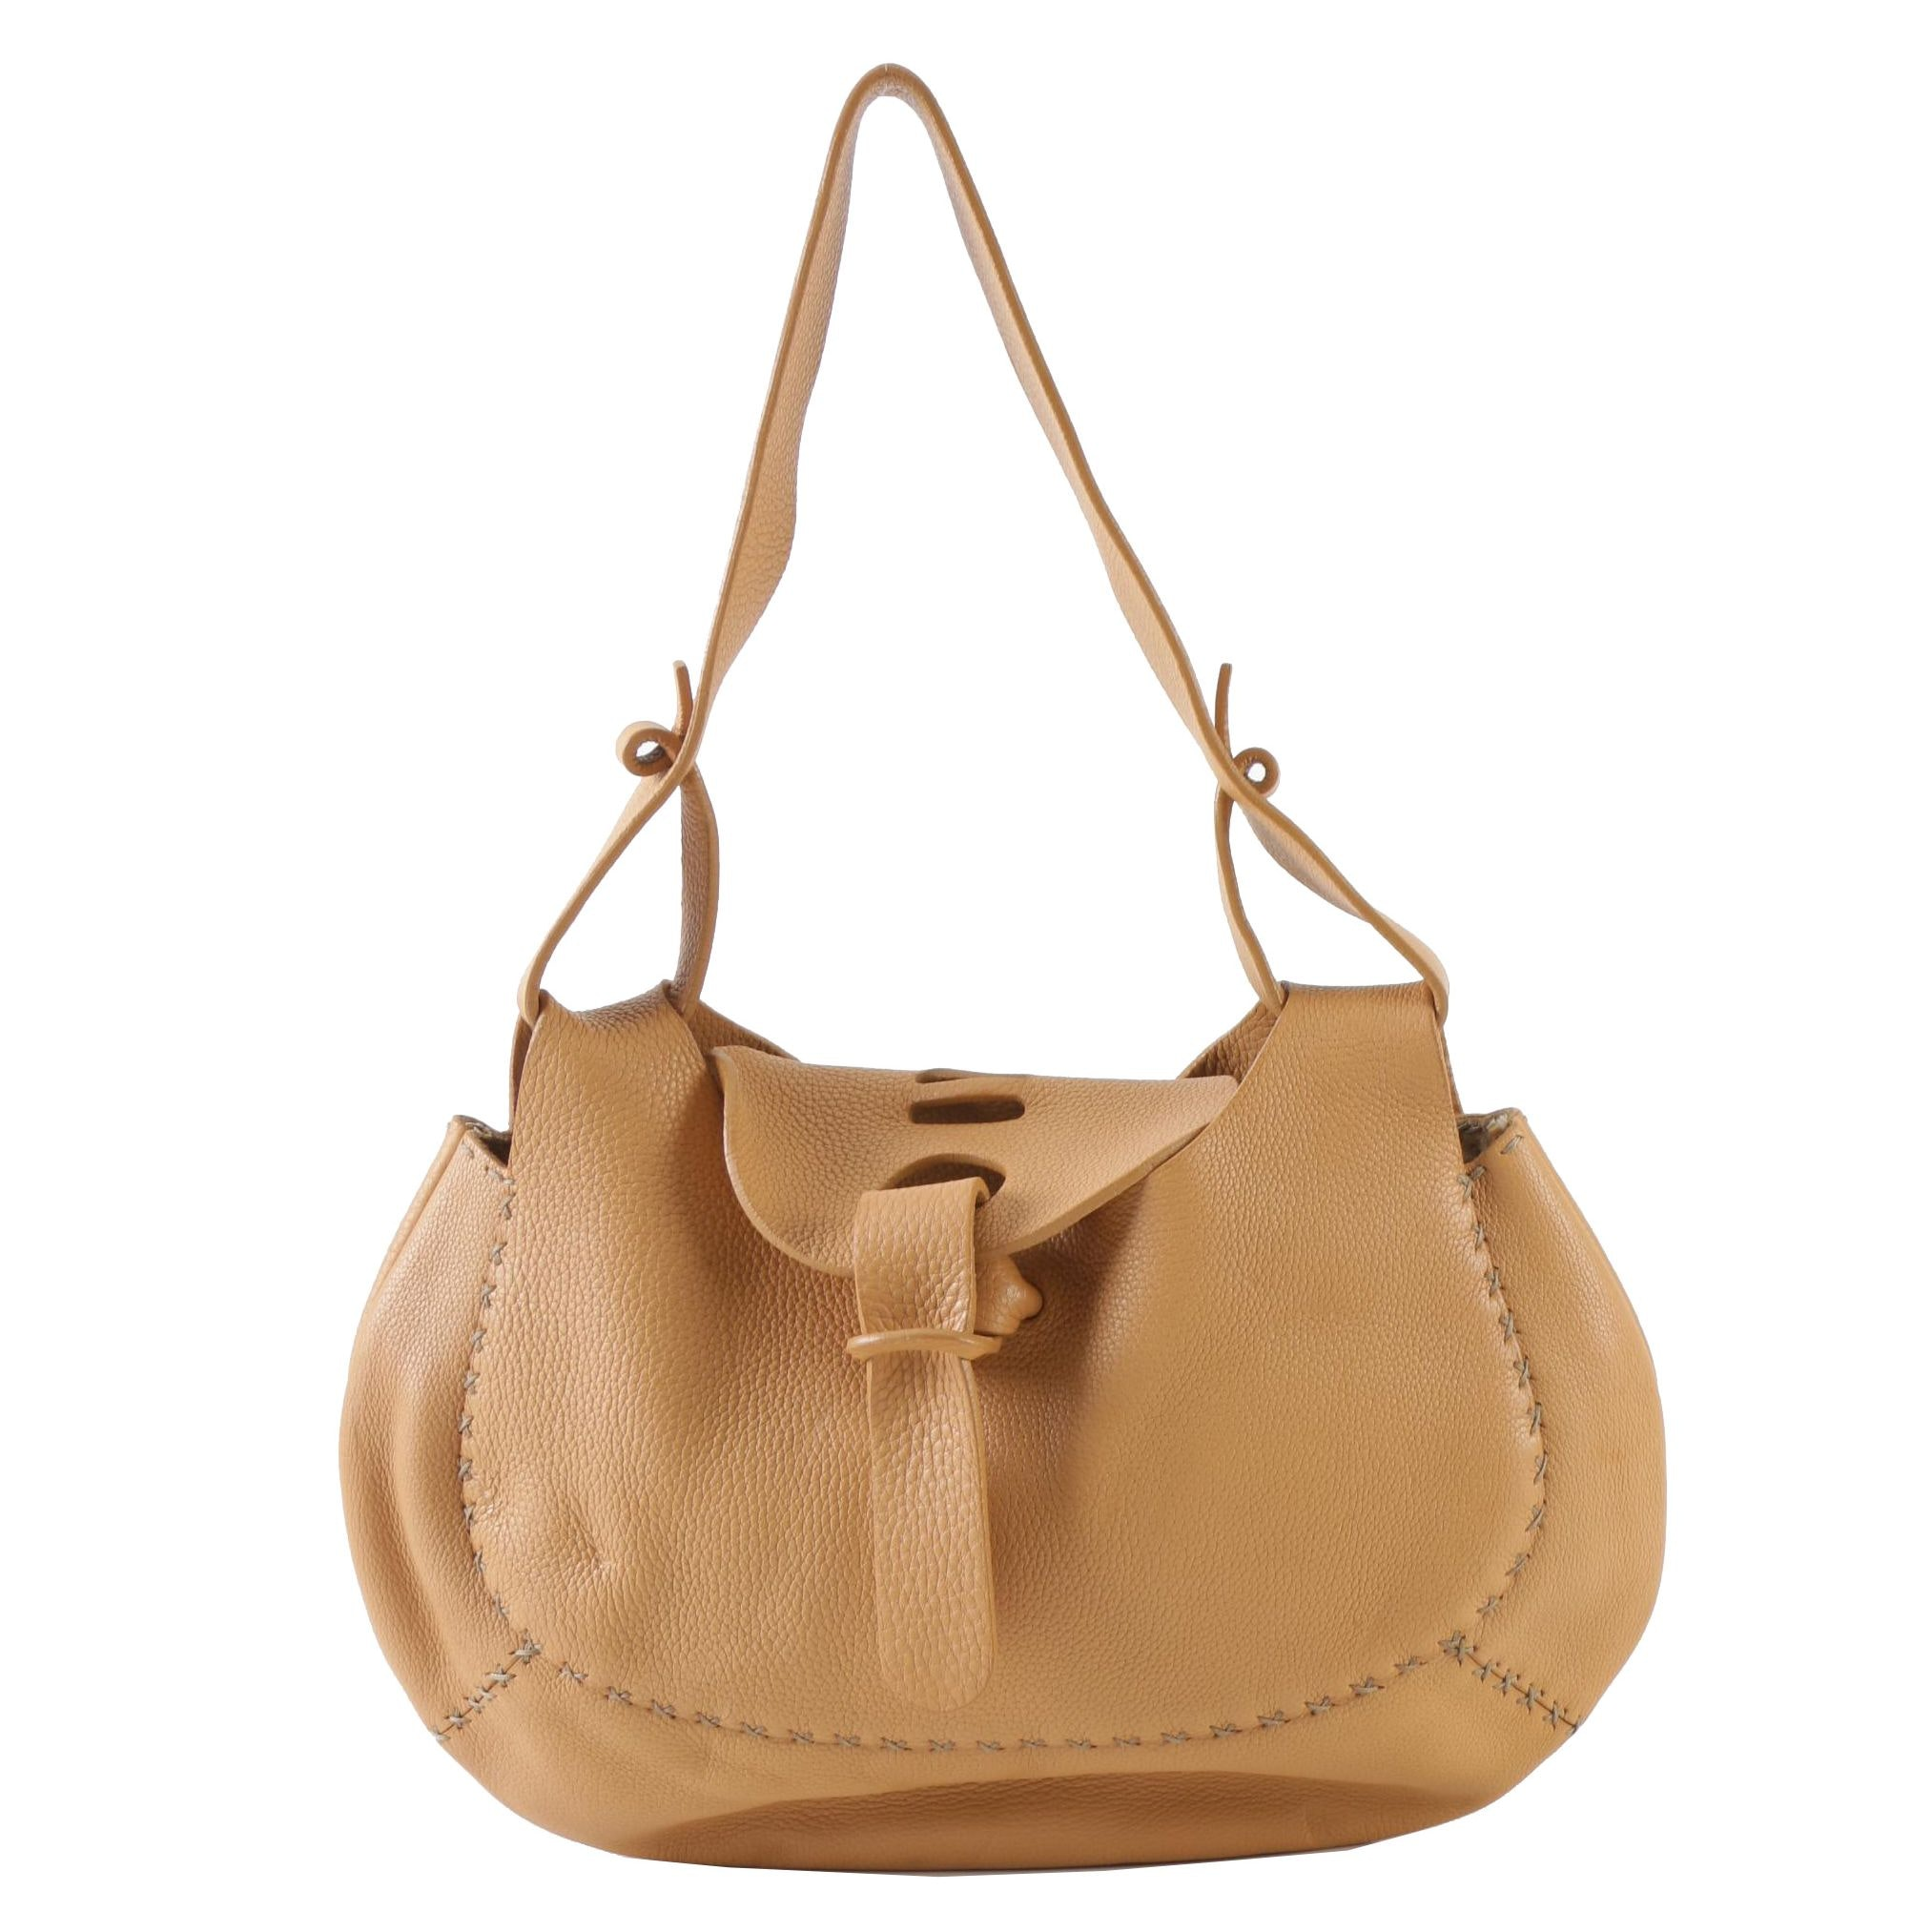 Fendi Tan Selleria Leather Cross-Stitch Hobo Bag with Sterling Silver Plaque